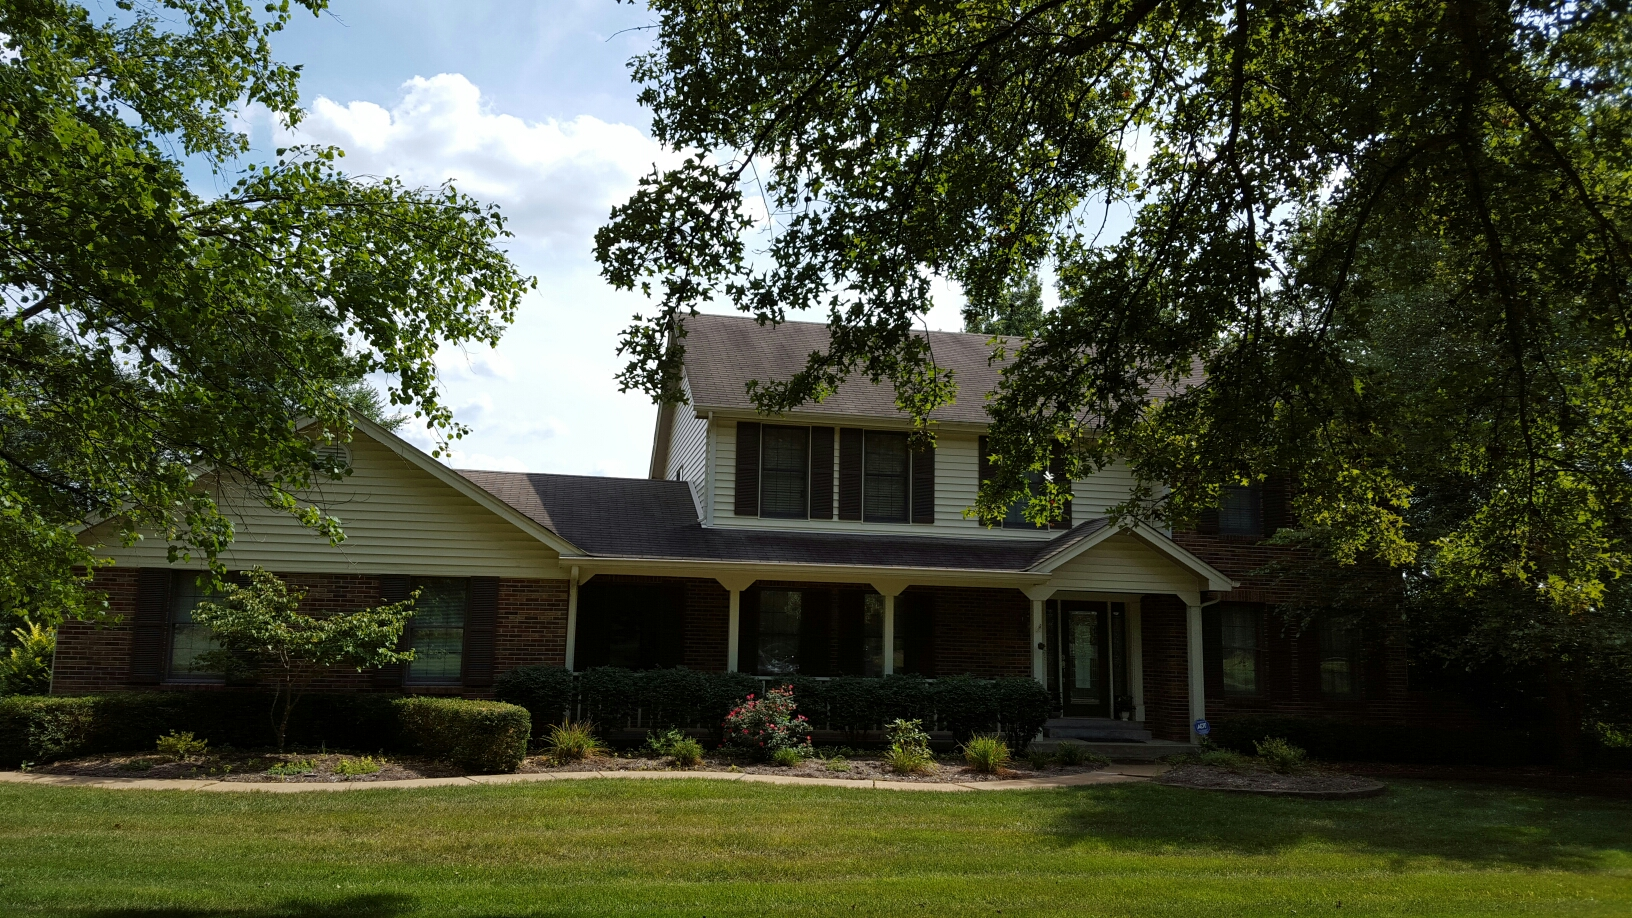 Chesterfield, MO - Estimate new roof install. Call Joe 314.550.7369